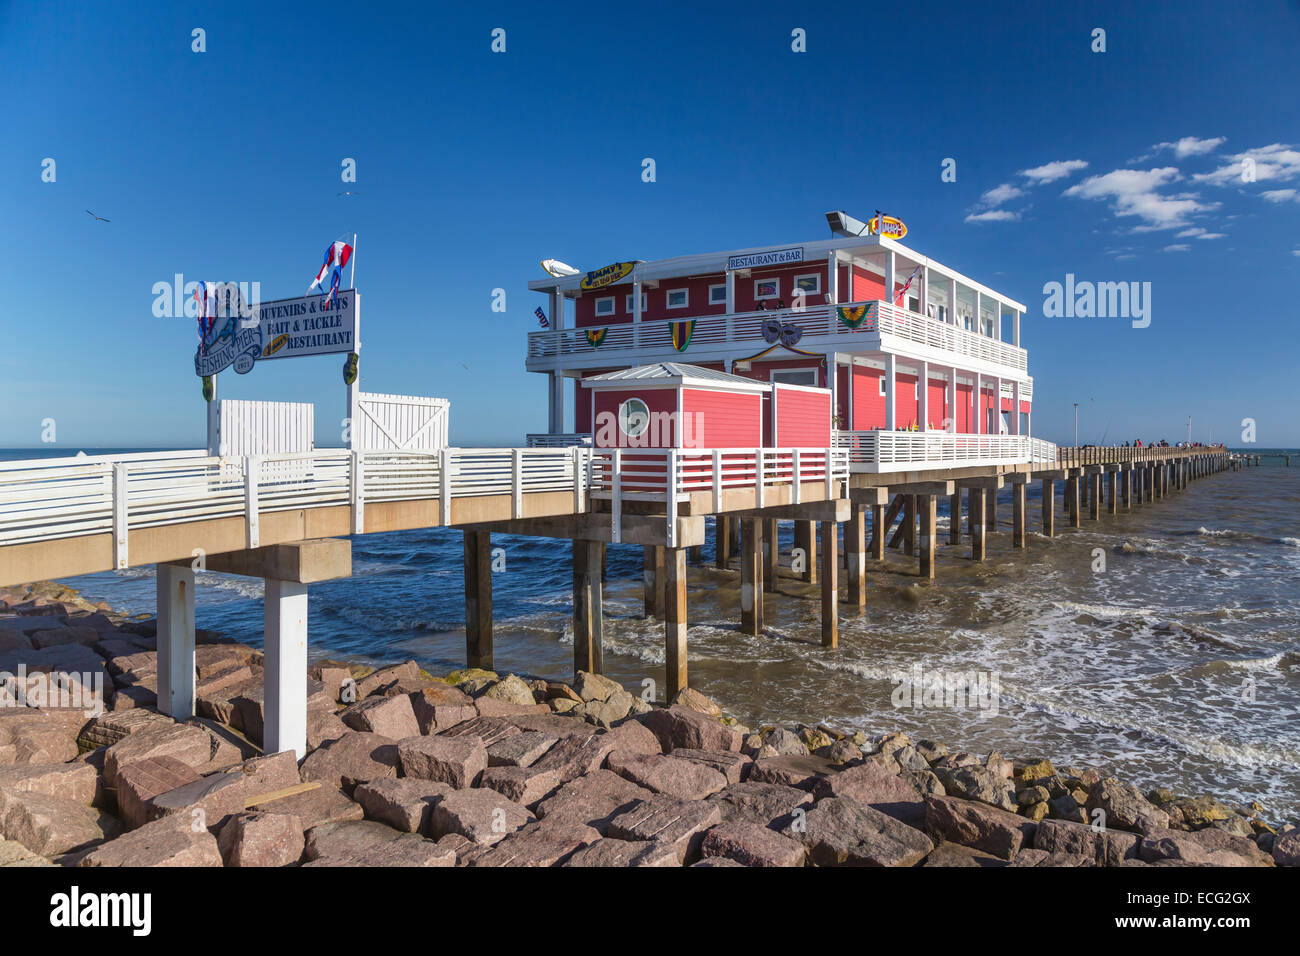 A restaurant and bar on the Galveston Fishing Pier on the Gulf of Mexico, Galveston, Texas, USA. - Stock Image